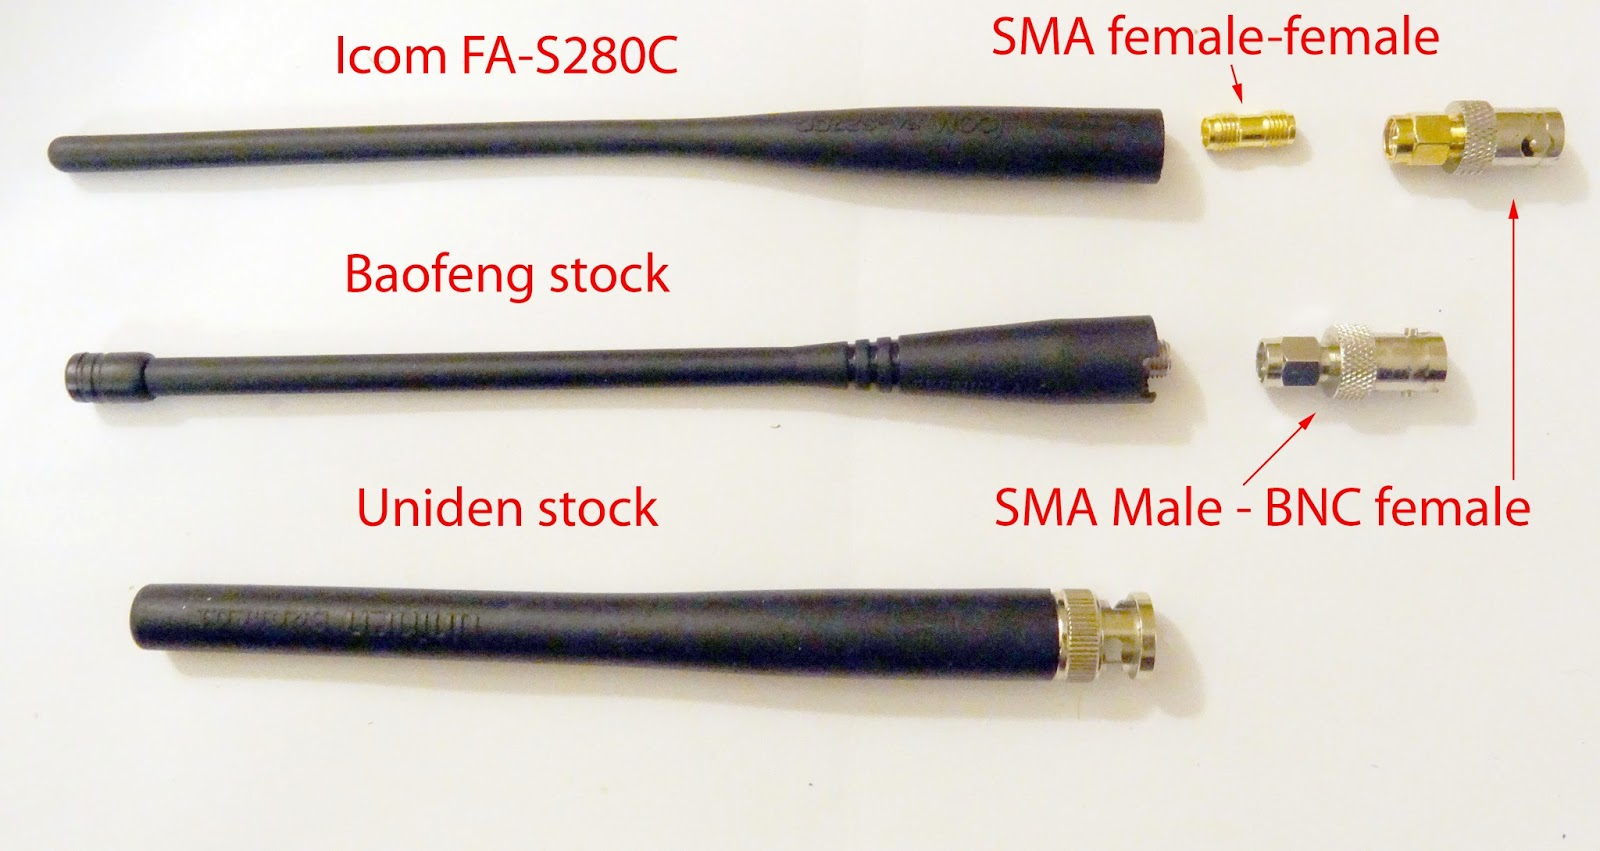 Monopole, Dipole, Radials, AIS, Rubber Ducky, Handheld antenna, performance, comparison, sdrformariners, test, review, evaluation, aerial, marine, beginner